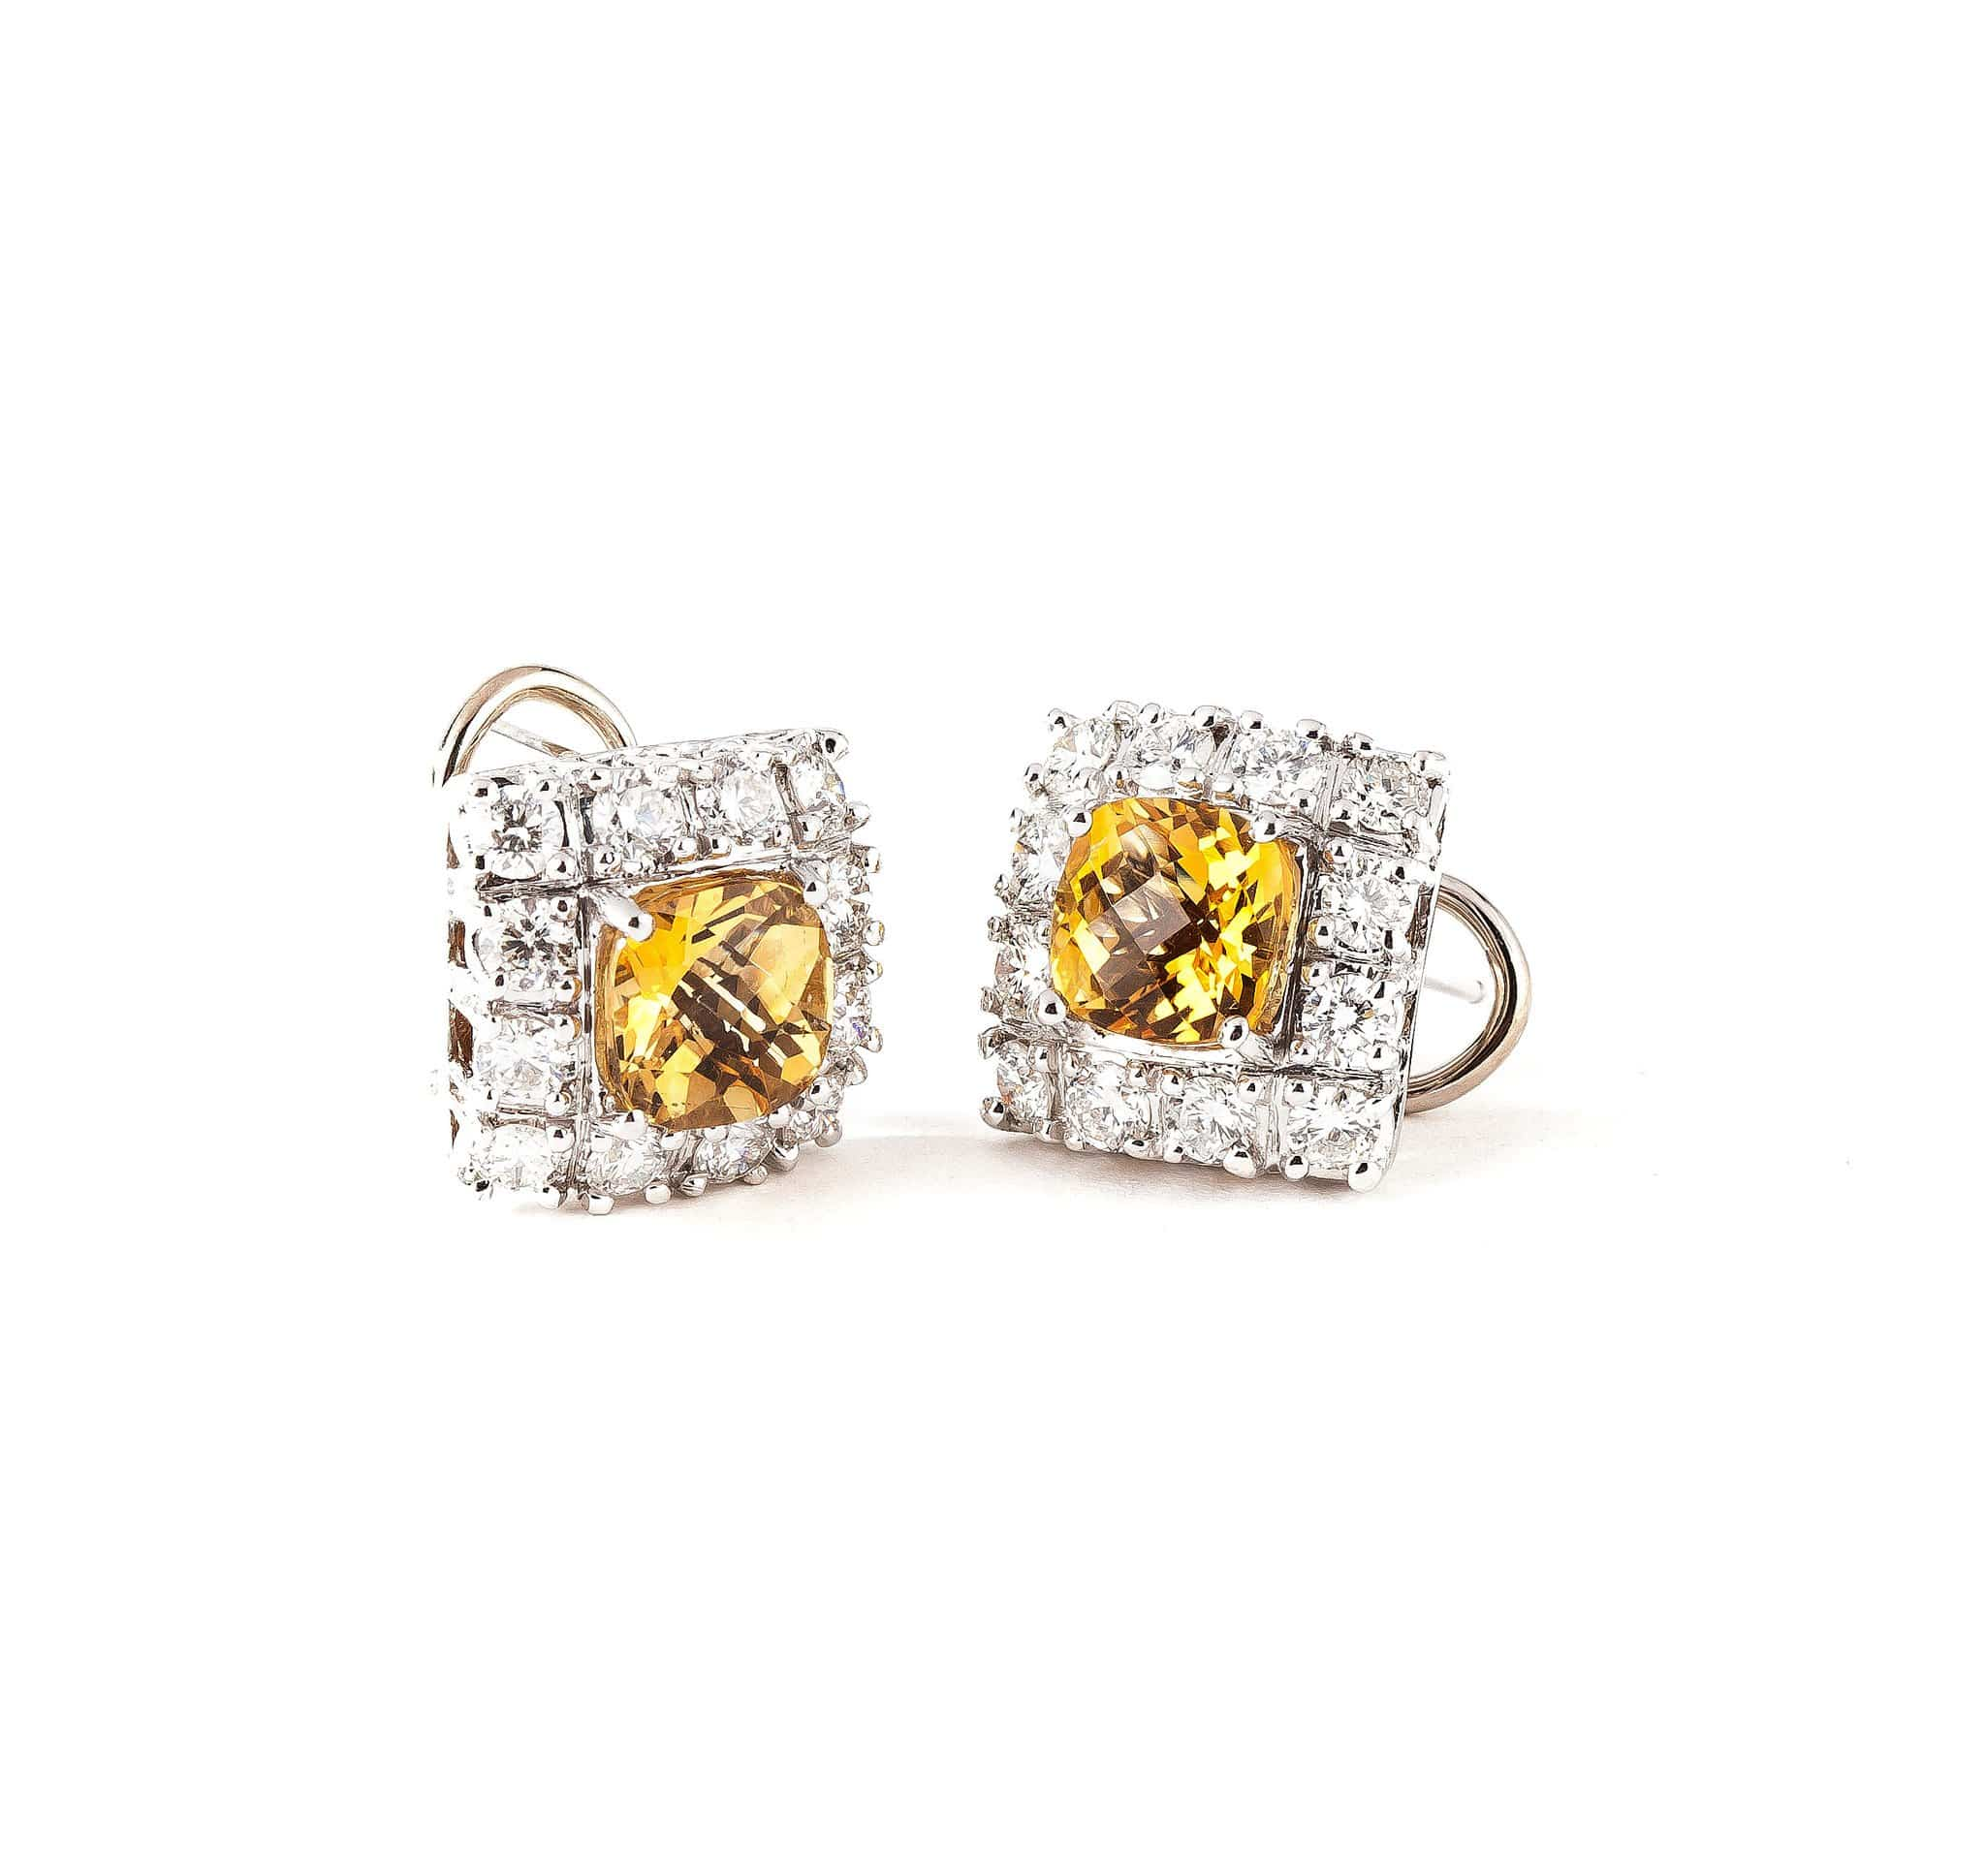 CITRINE GEMSTONES AND DIAMONDS EARRINGS - GRACE TO GLORY - Chris Aire Fine Jewelry & Timepieces